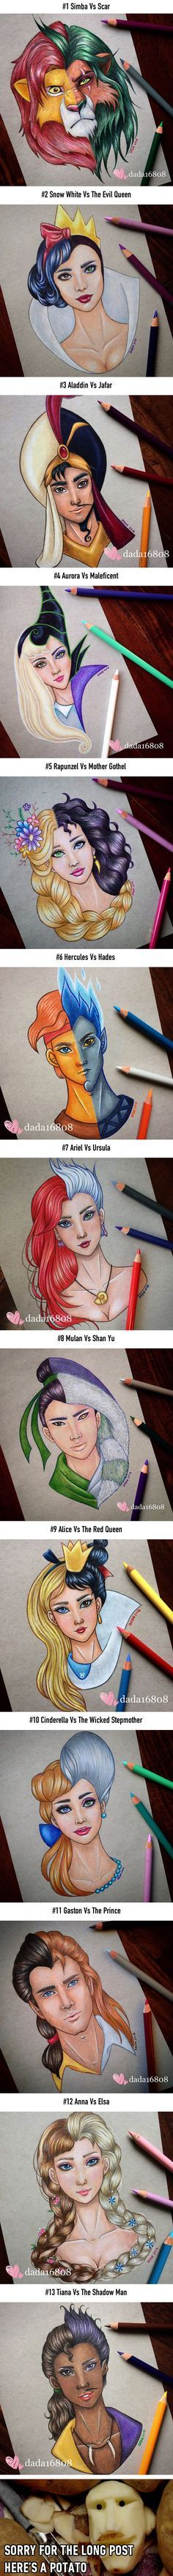 This Artist Merges Disney Heroes With Villains - 9GAG